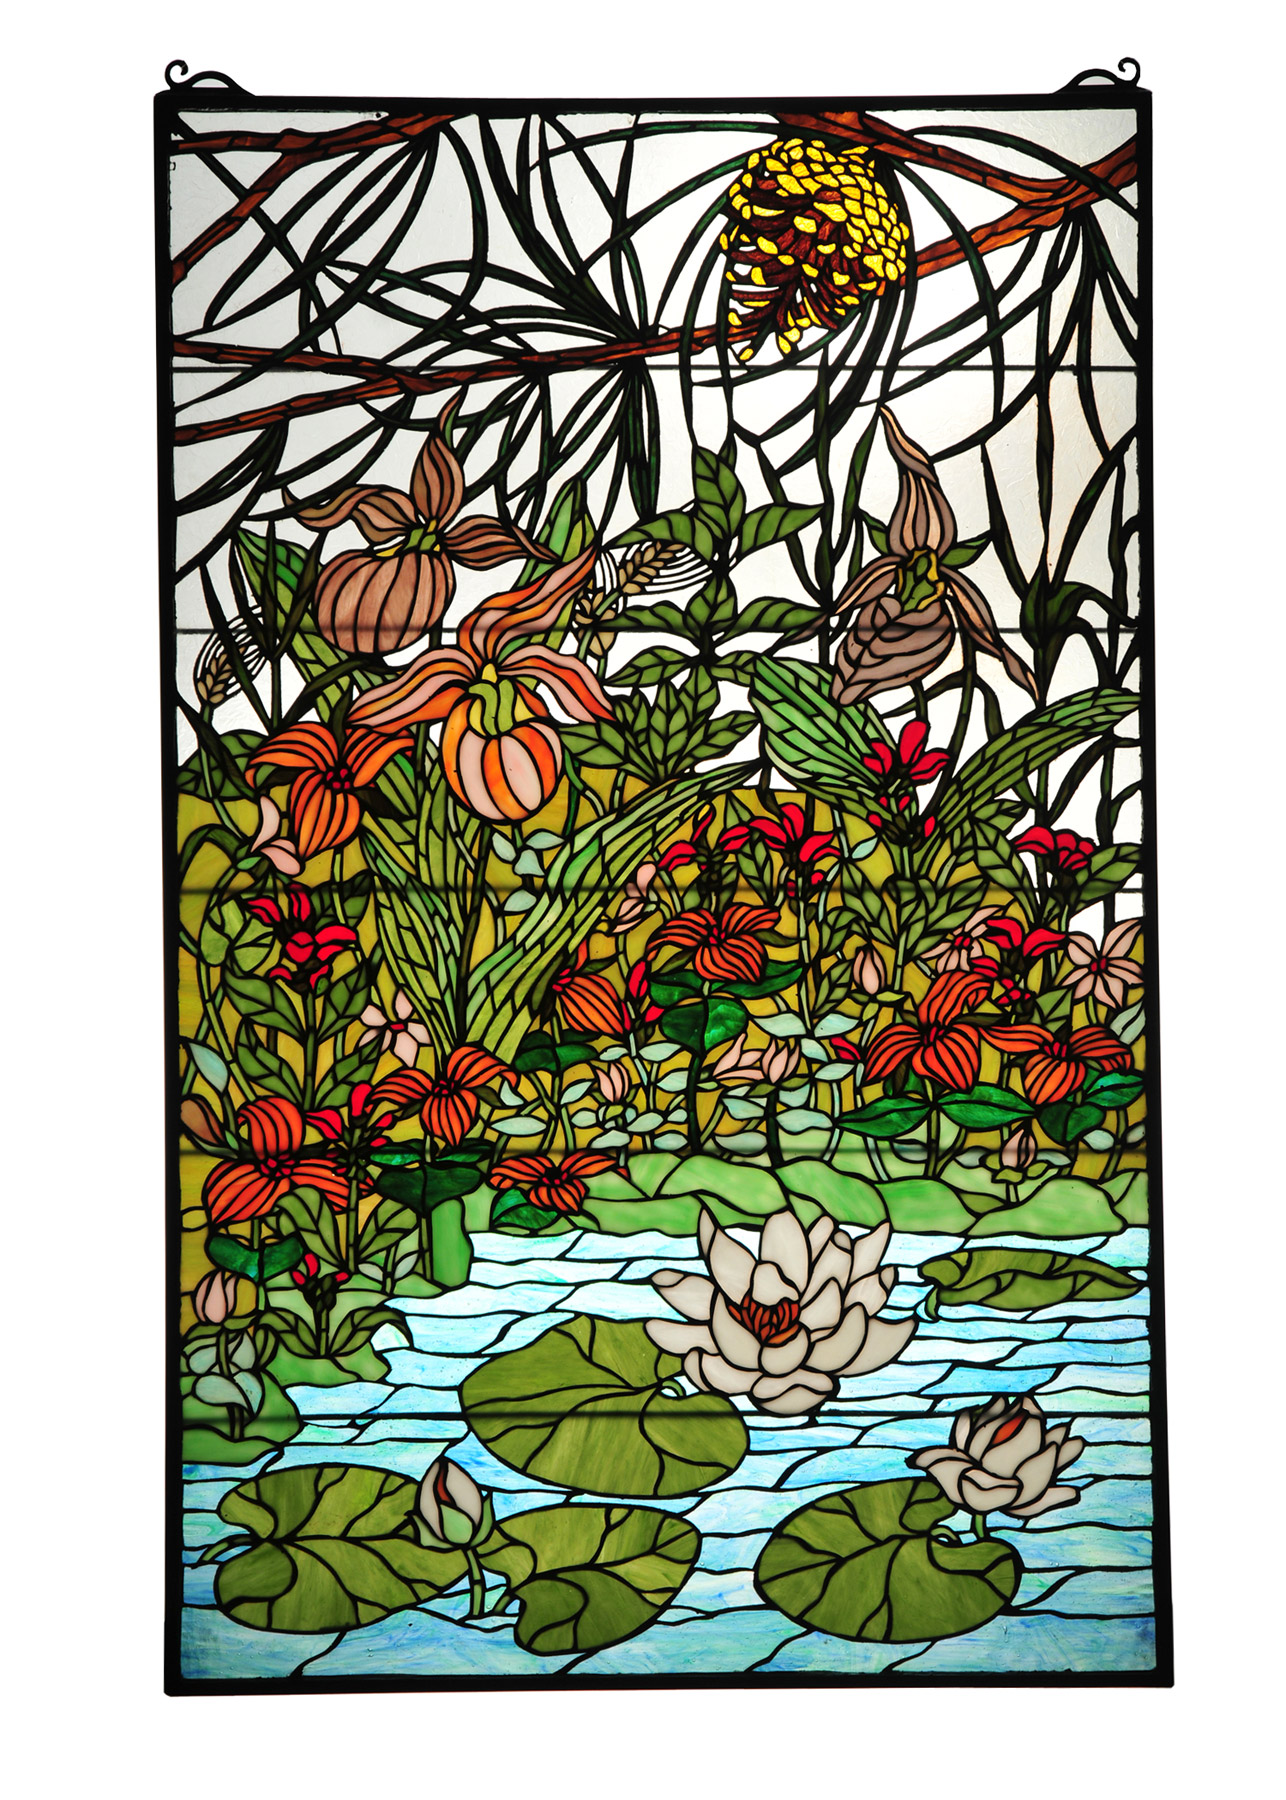 Meyda 77661 Tiffany Woodland Lilypond Stained Glass Window